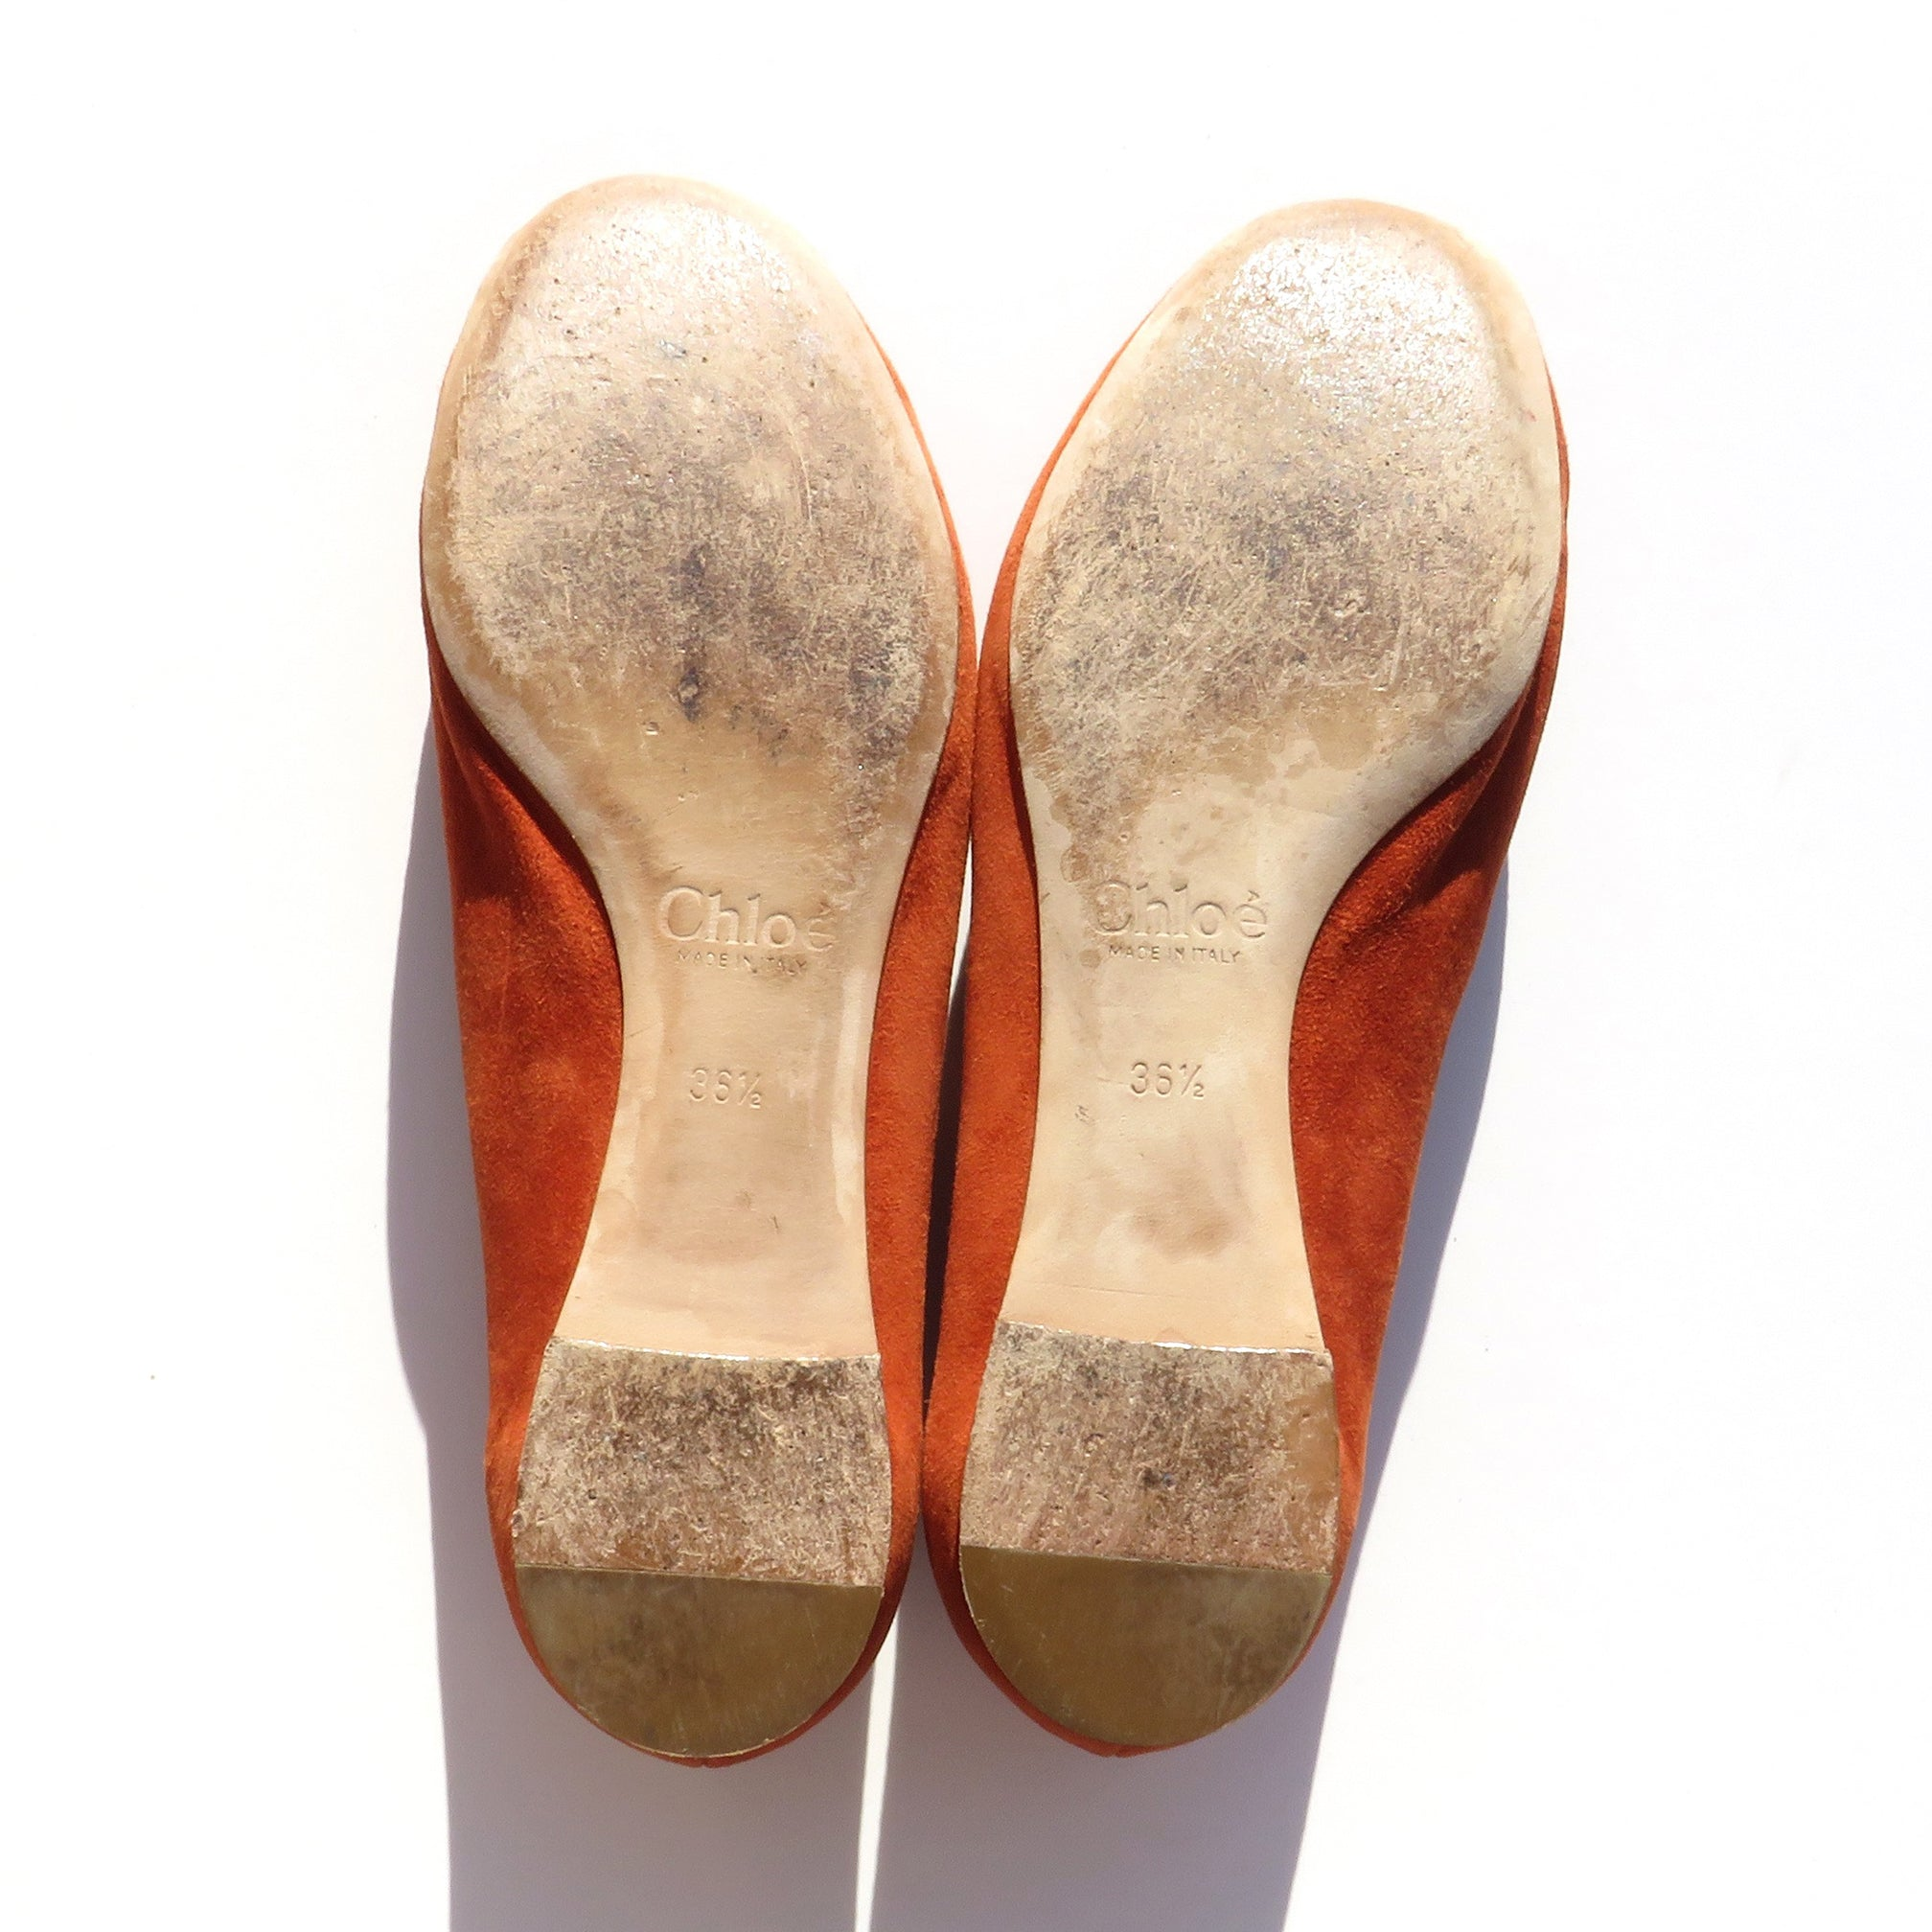 $570 CHLOE Lauren Sienna Rust Burnt Orange Suede Scalloped Ballet Flats 36.5 GUC